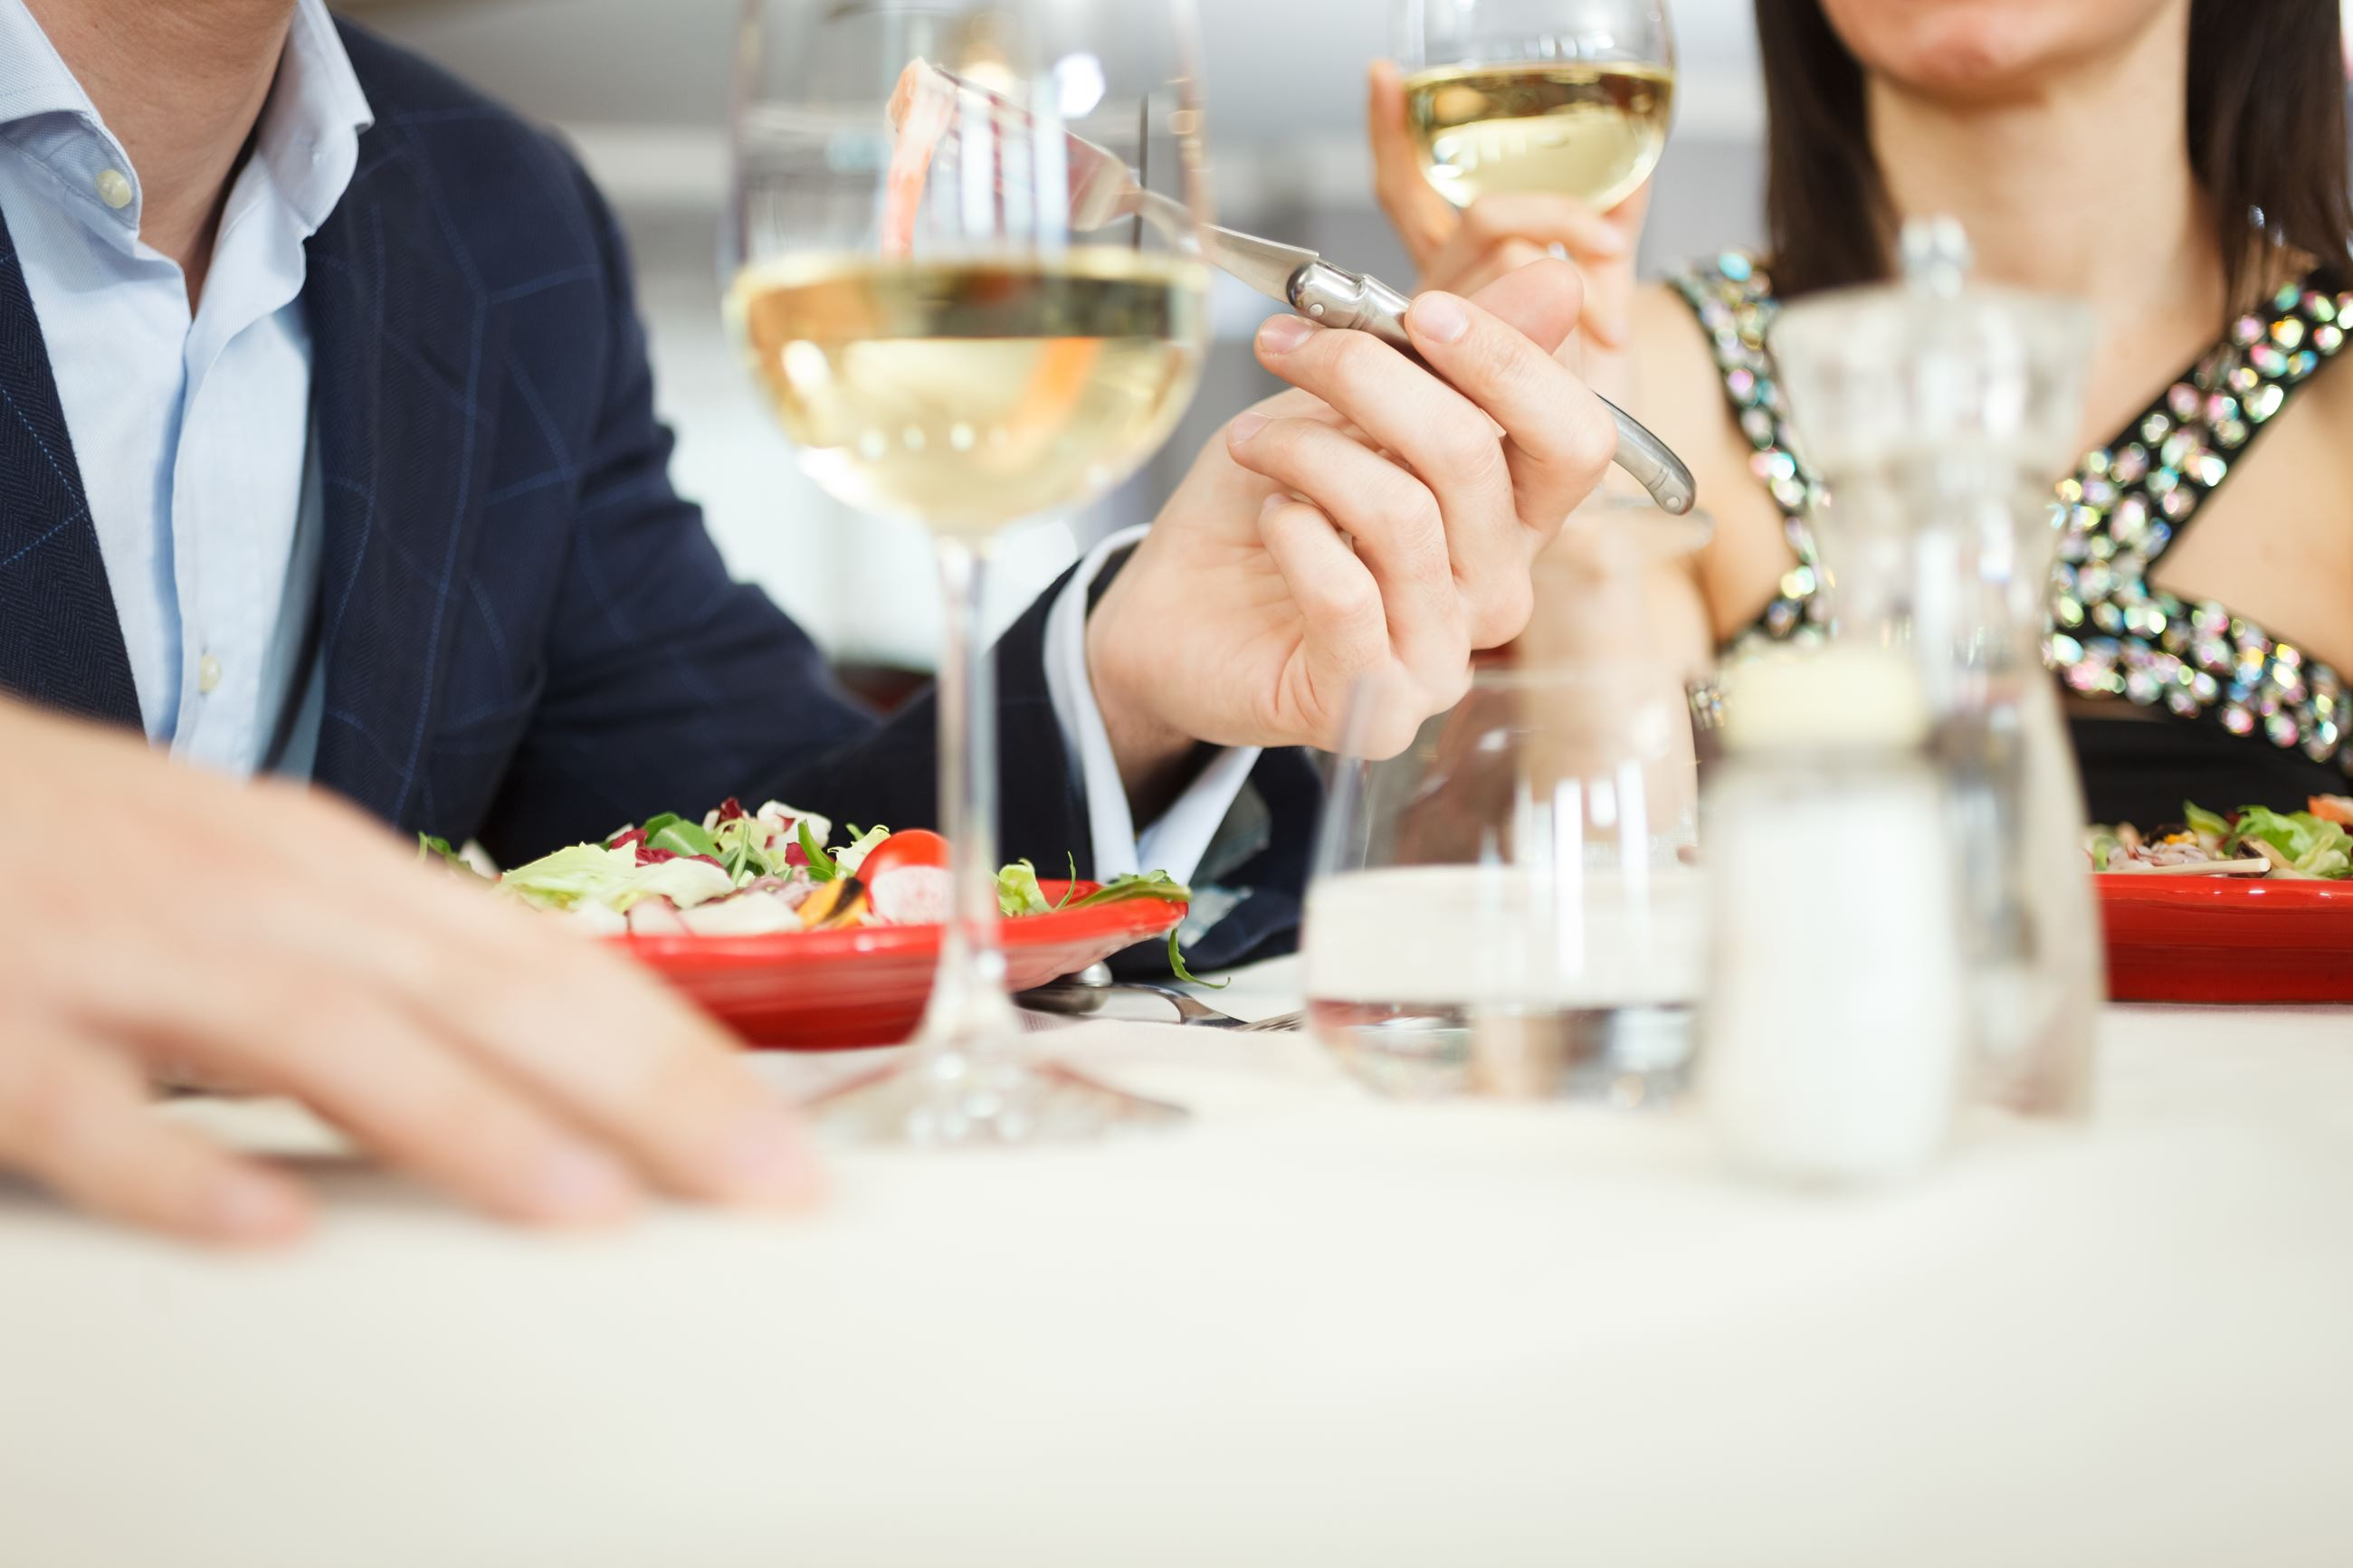 Man and woman at a table eating and sipping wine